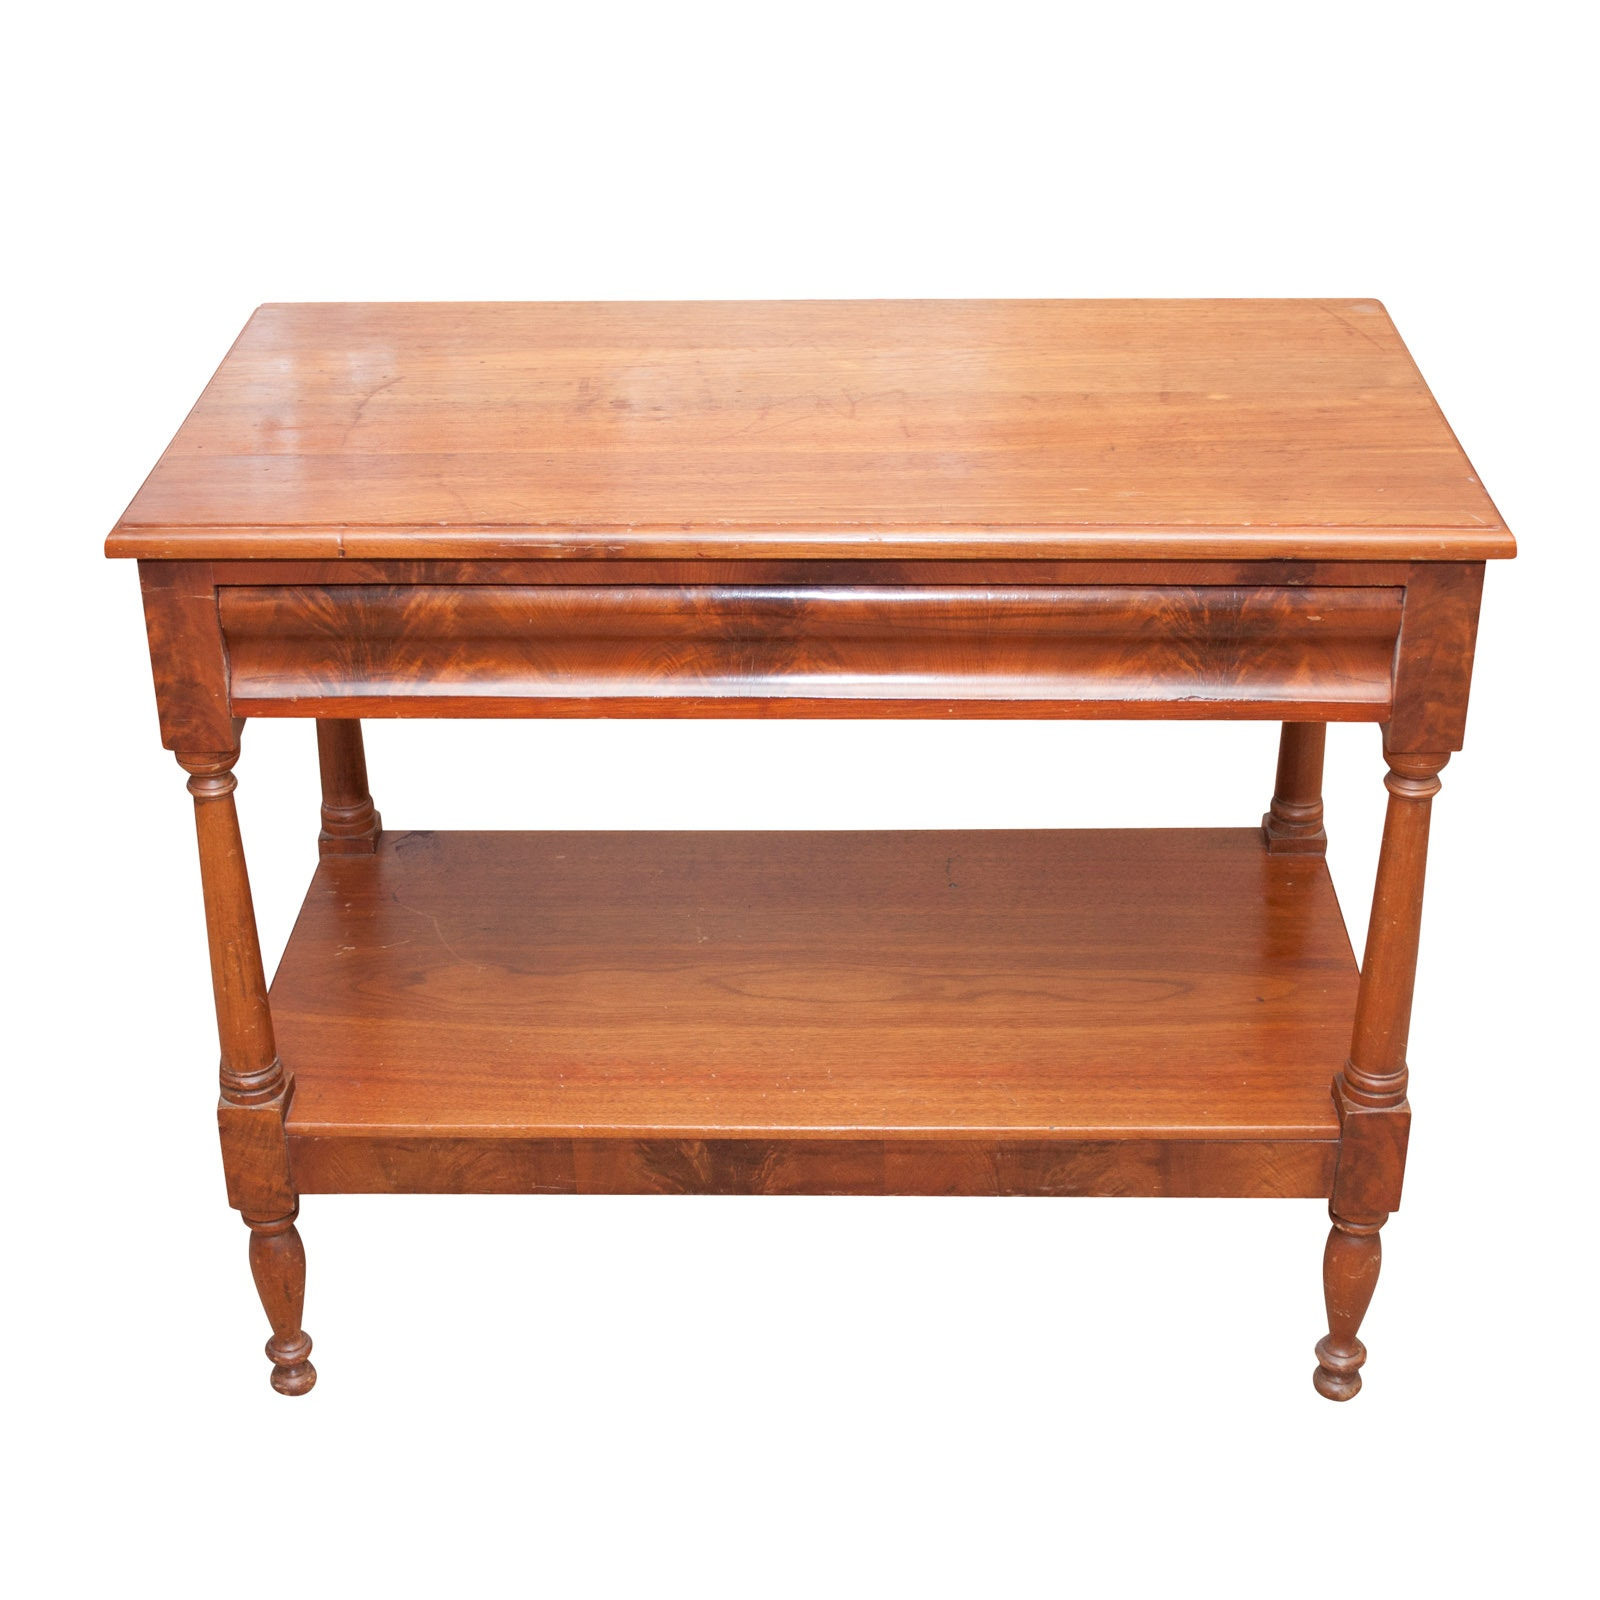 Mahogany Entry Table with Flame Veneer, Early to Mid 19th Century